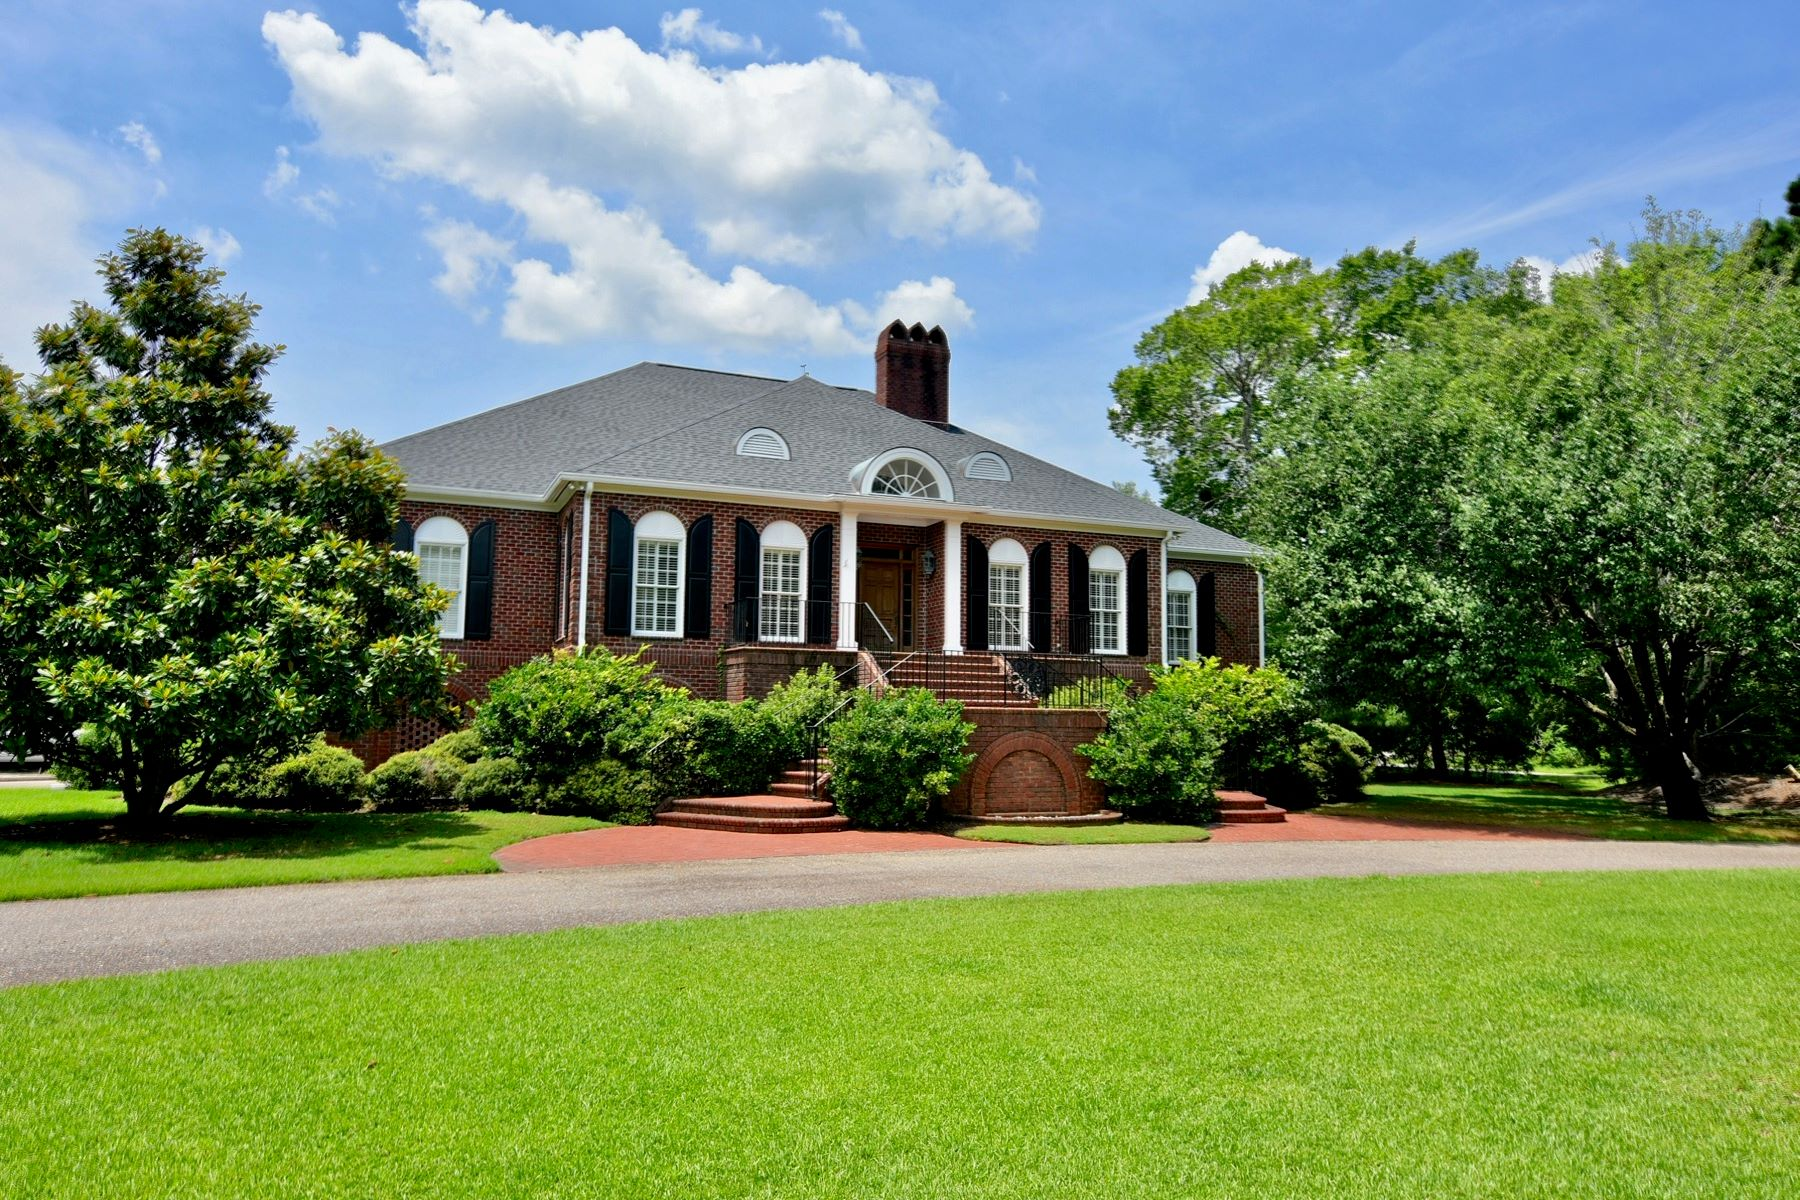 Single Family Home for Sale at 2610 Wallace Pate Dr., Georgetown, SC 29440 2610 Wallace Pate Dr. Georgetown, South Carolina 29440 United States